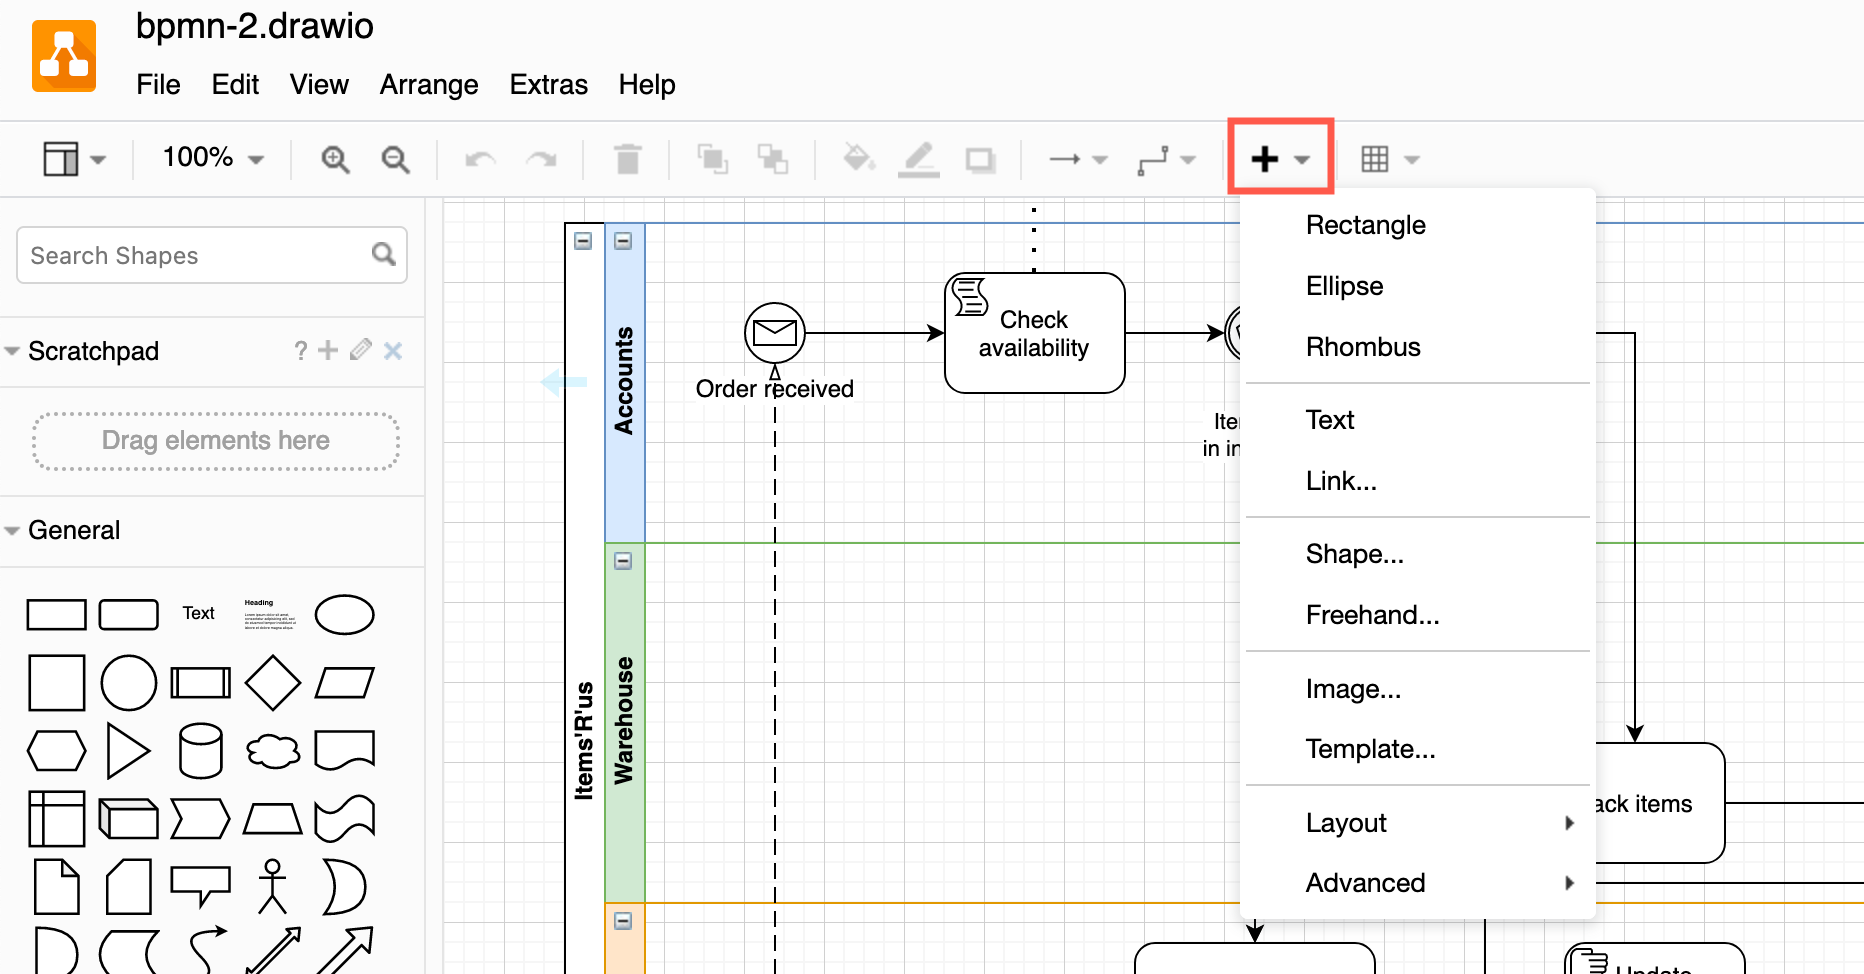 You can insert a wide range of shapes, text, links, layouts, images, templates and more via the Insert tool on the toolbar in diagrams.net